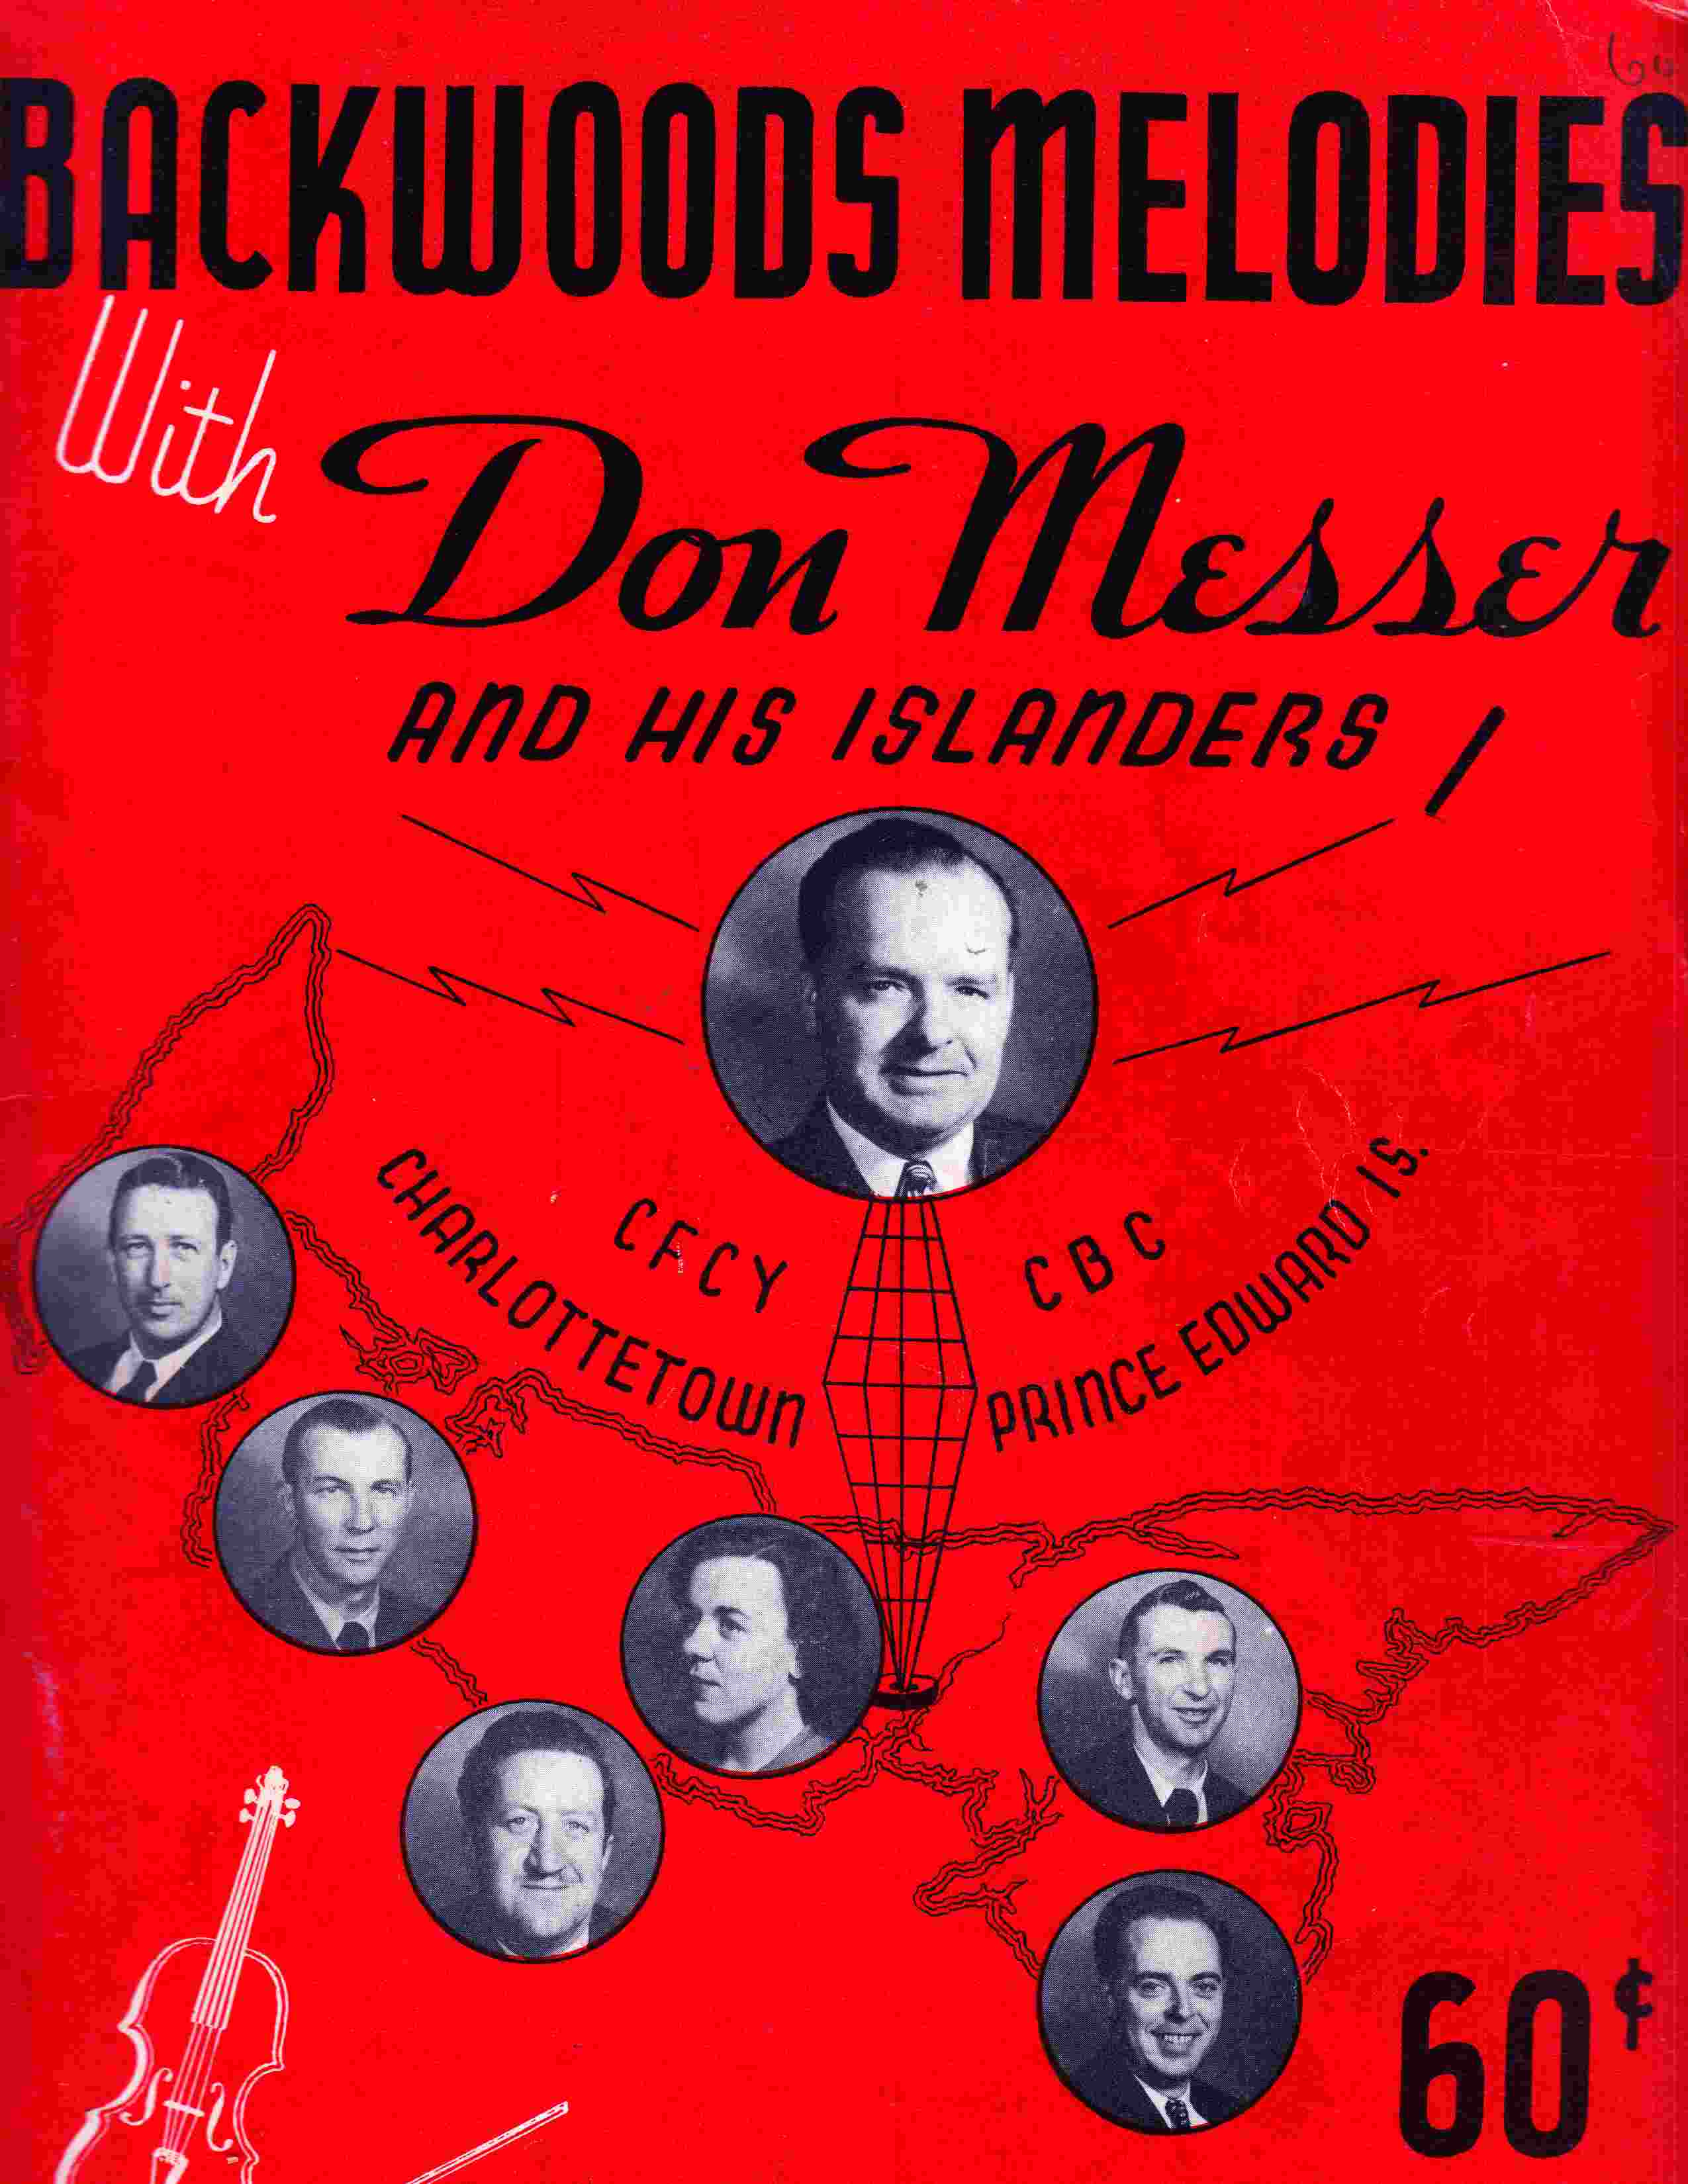 Image for Backwoods Melodies with Don Messer and His Islanders